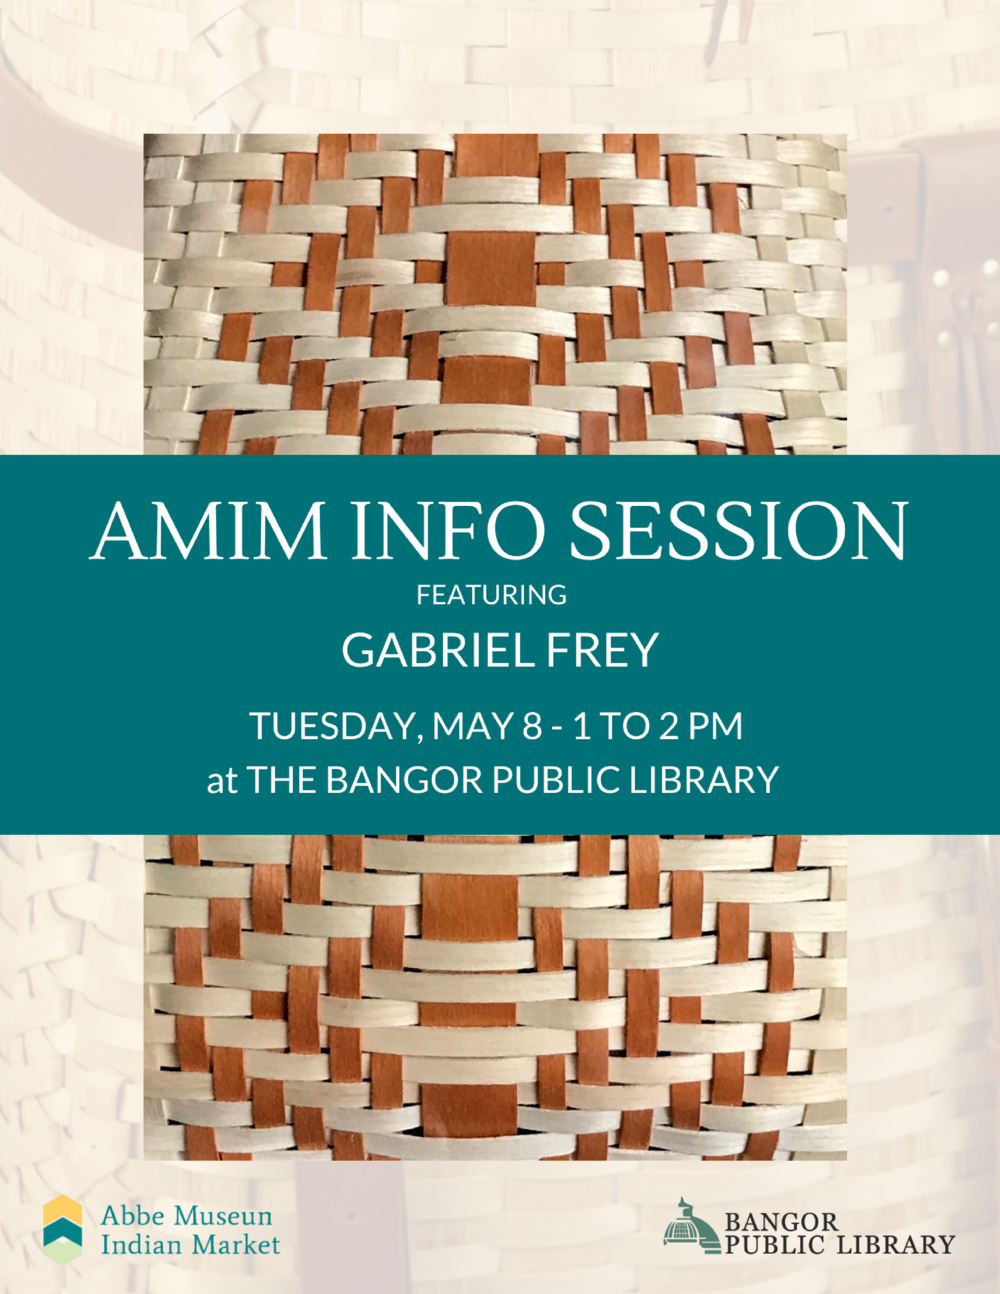 AMIM Info Session Flyer.png